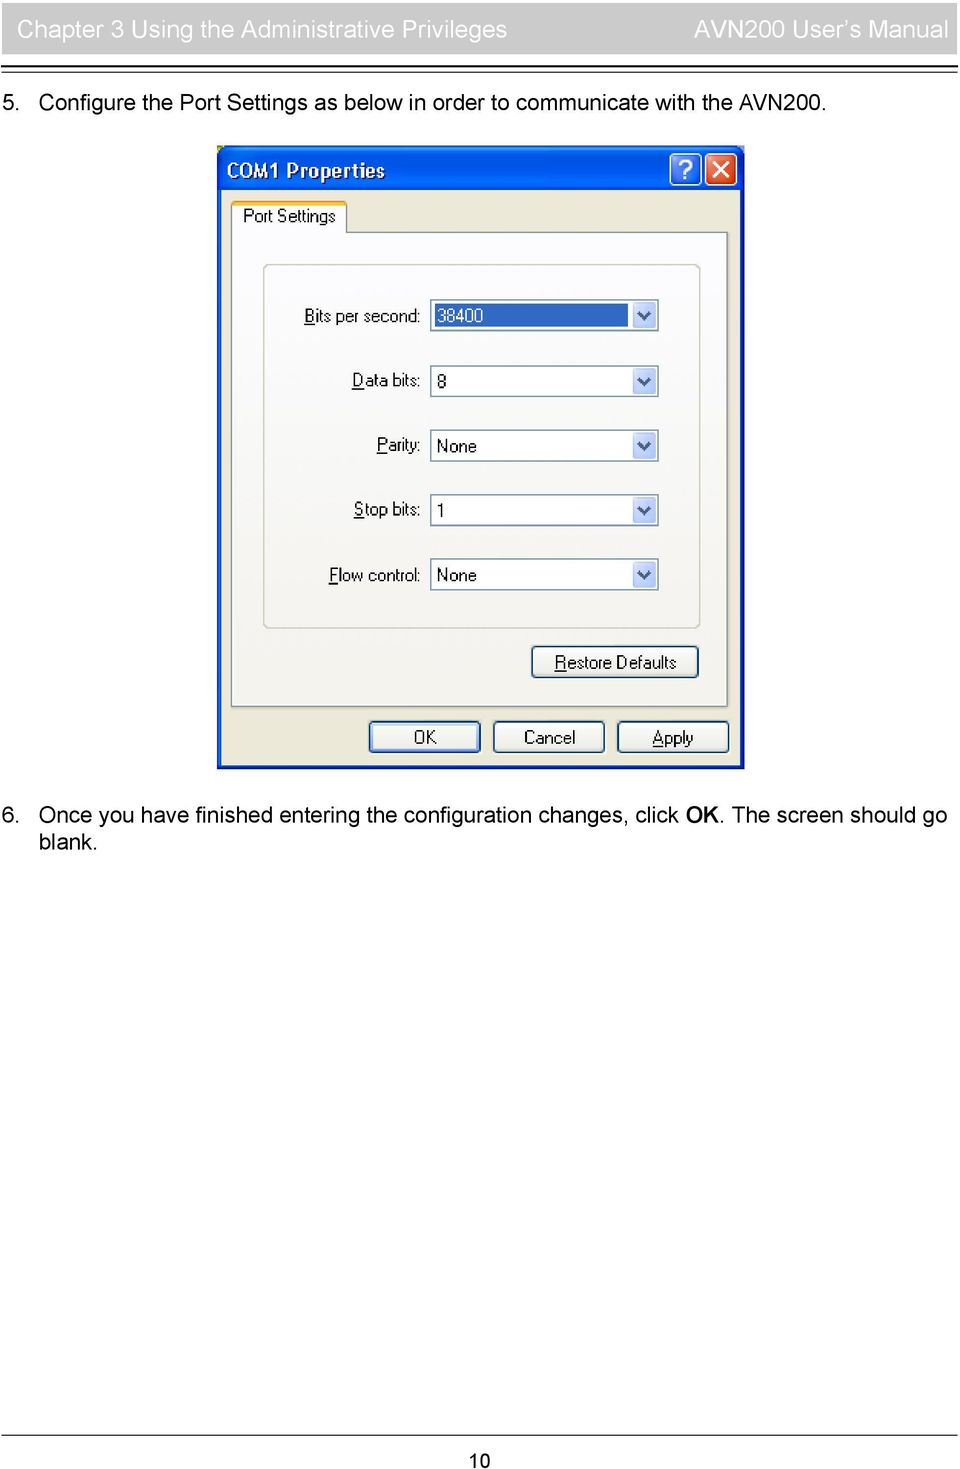 Configure the Port Settings as below in order to communicate